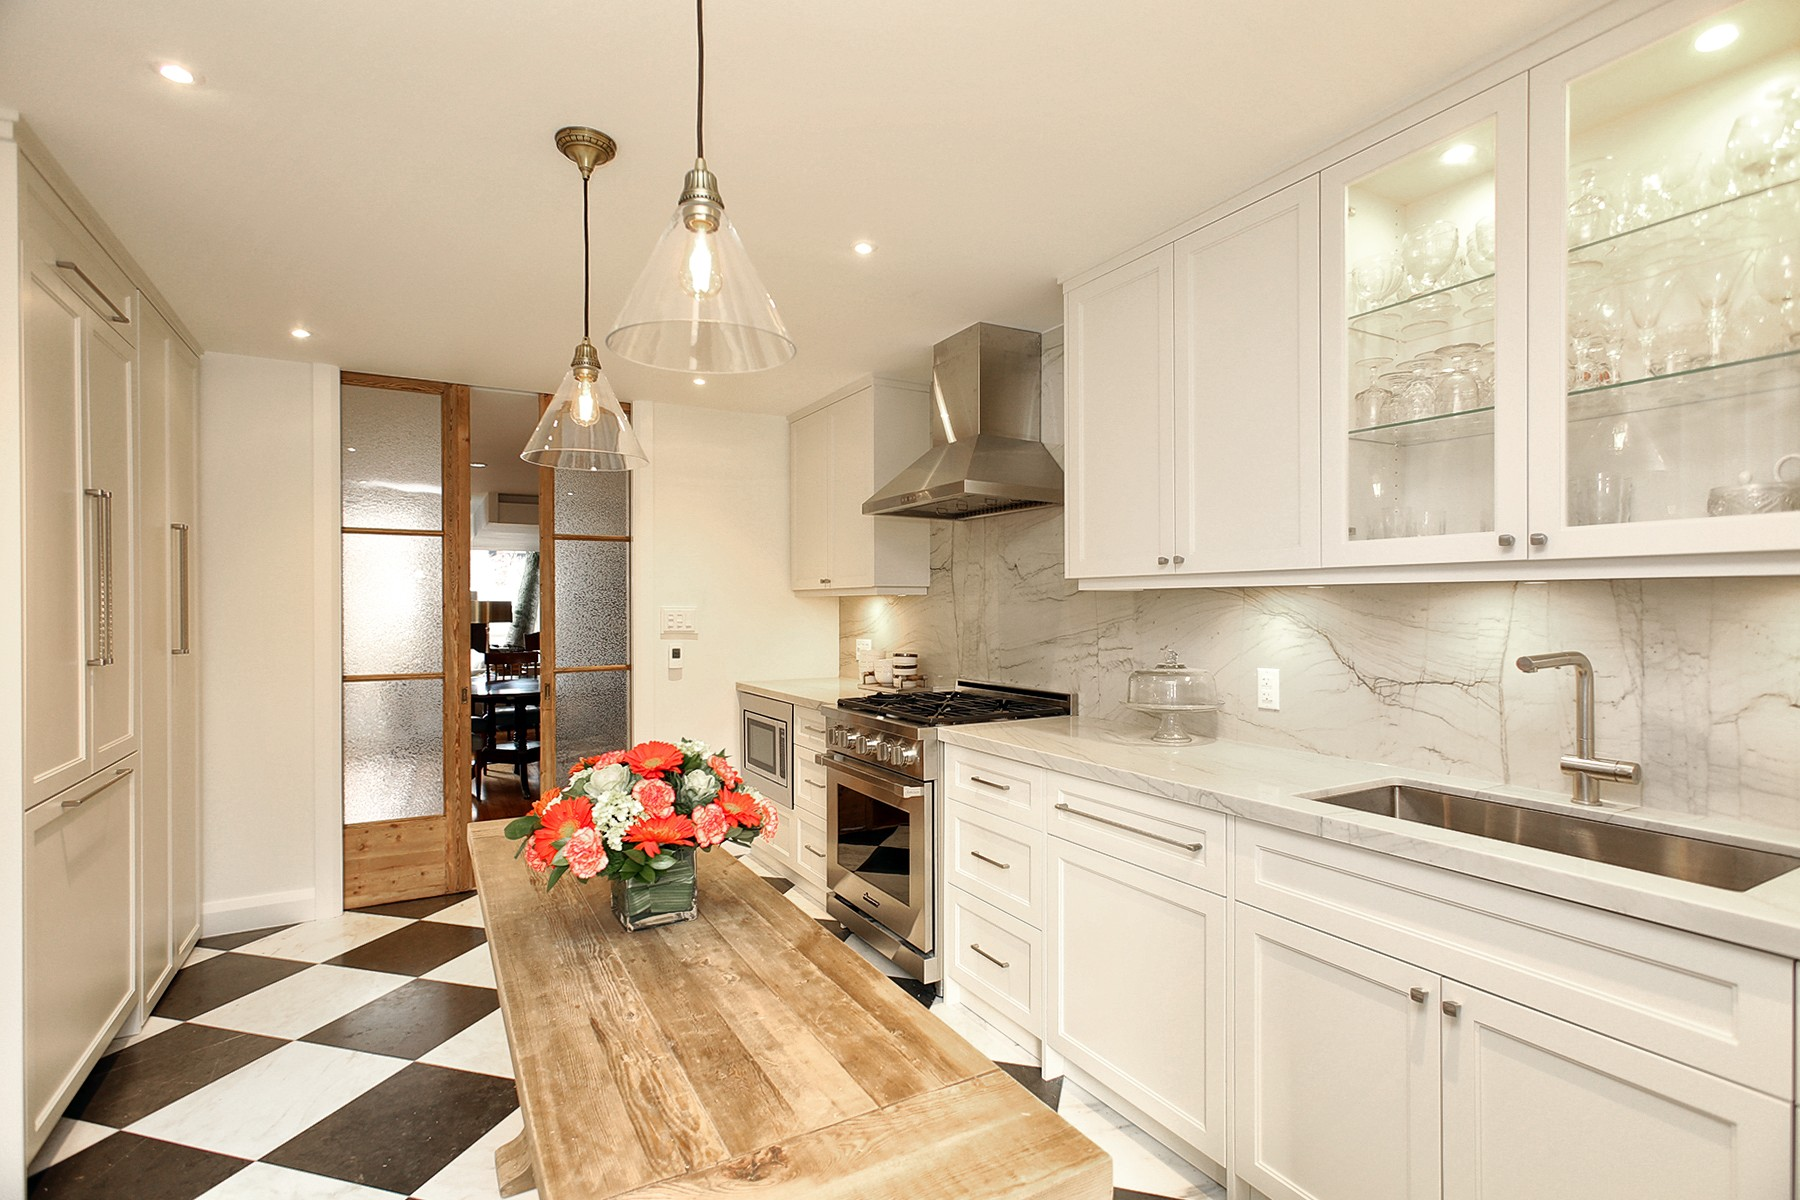 Floor | Countertop & Backsplash